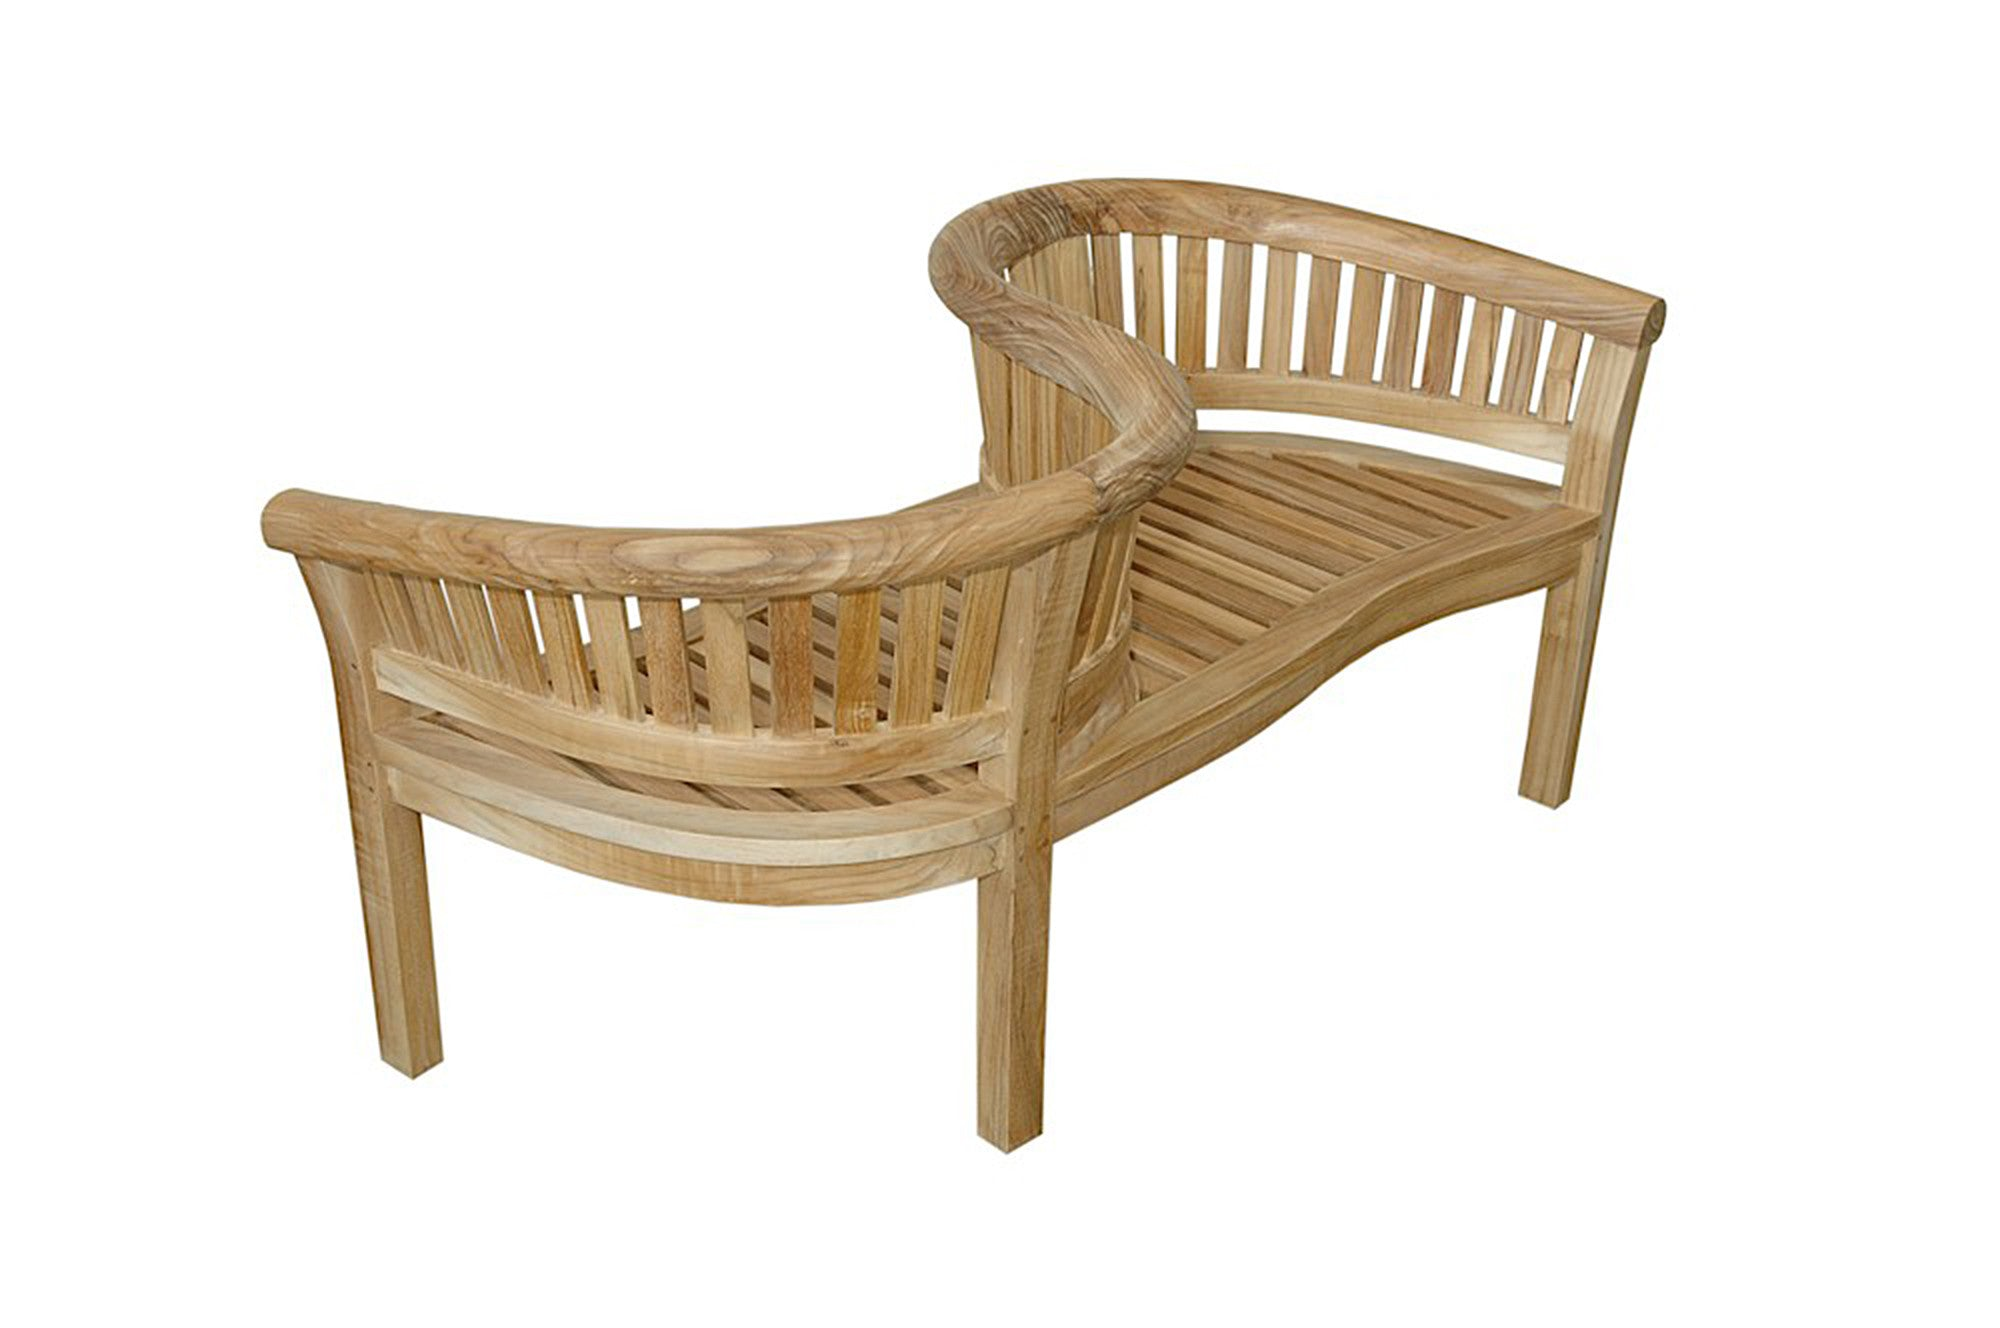 anderson teak curve teak love seat garden bench bh 202ls furniture - Wooden Garden Furniture Love Seats